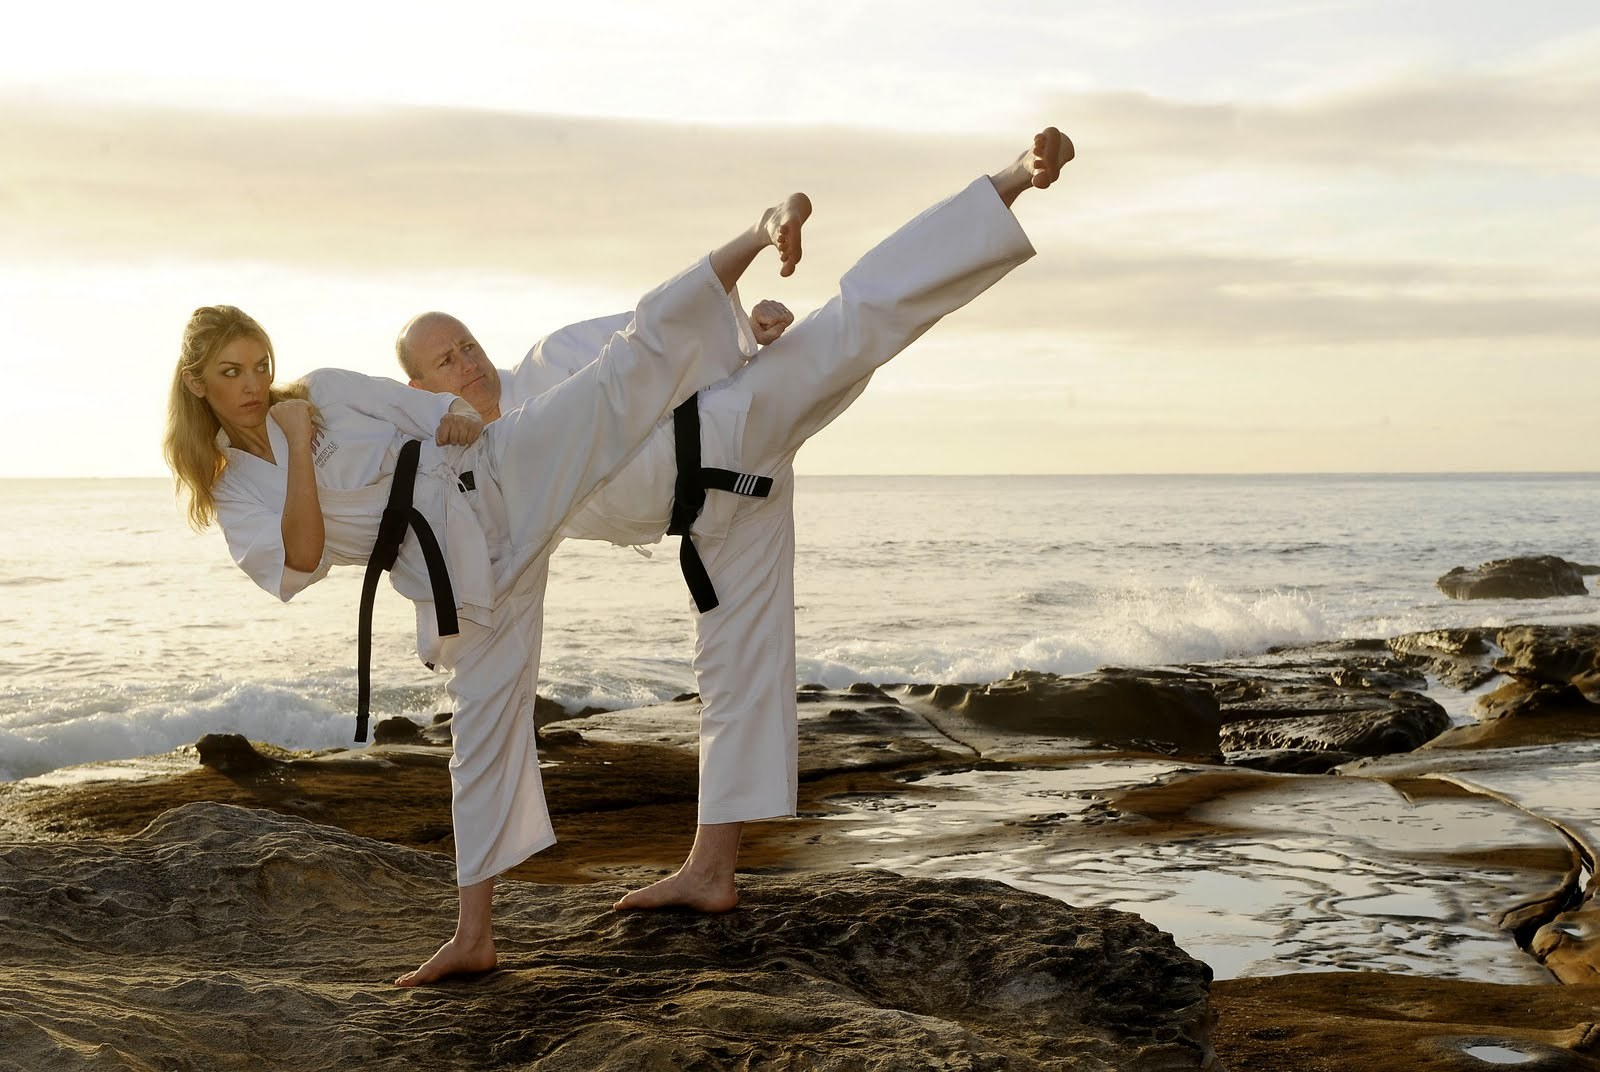 karate HD Wallpaper